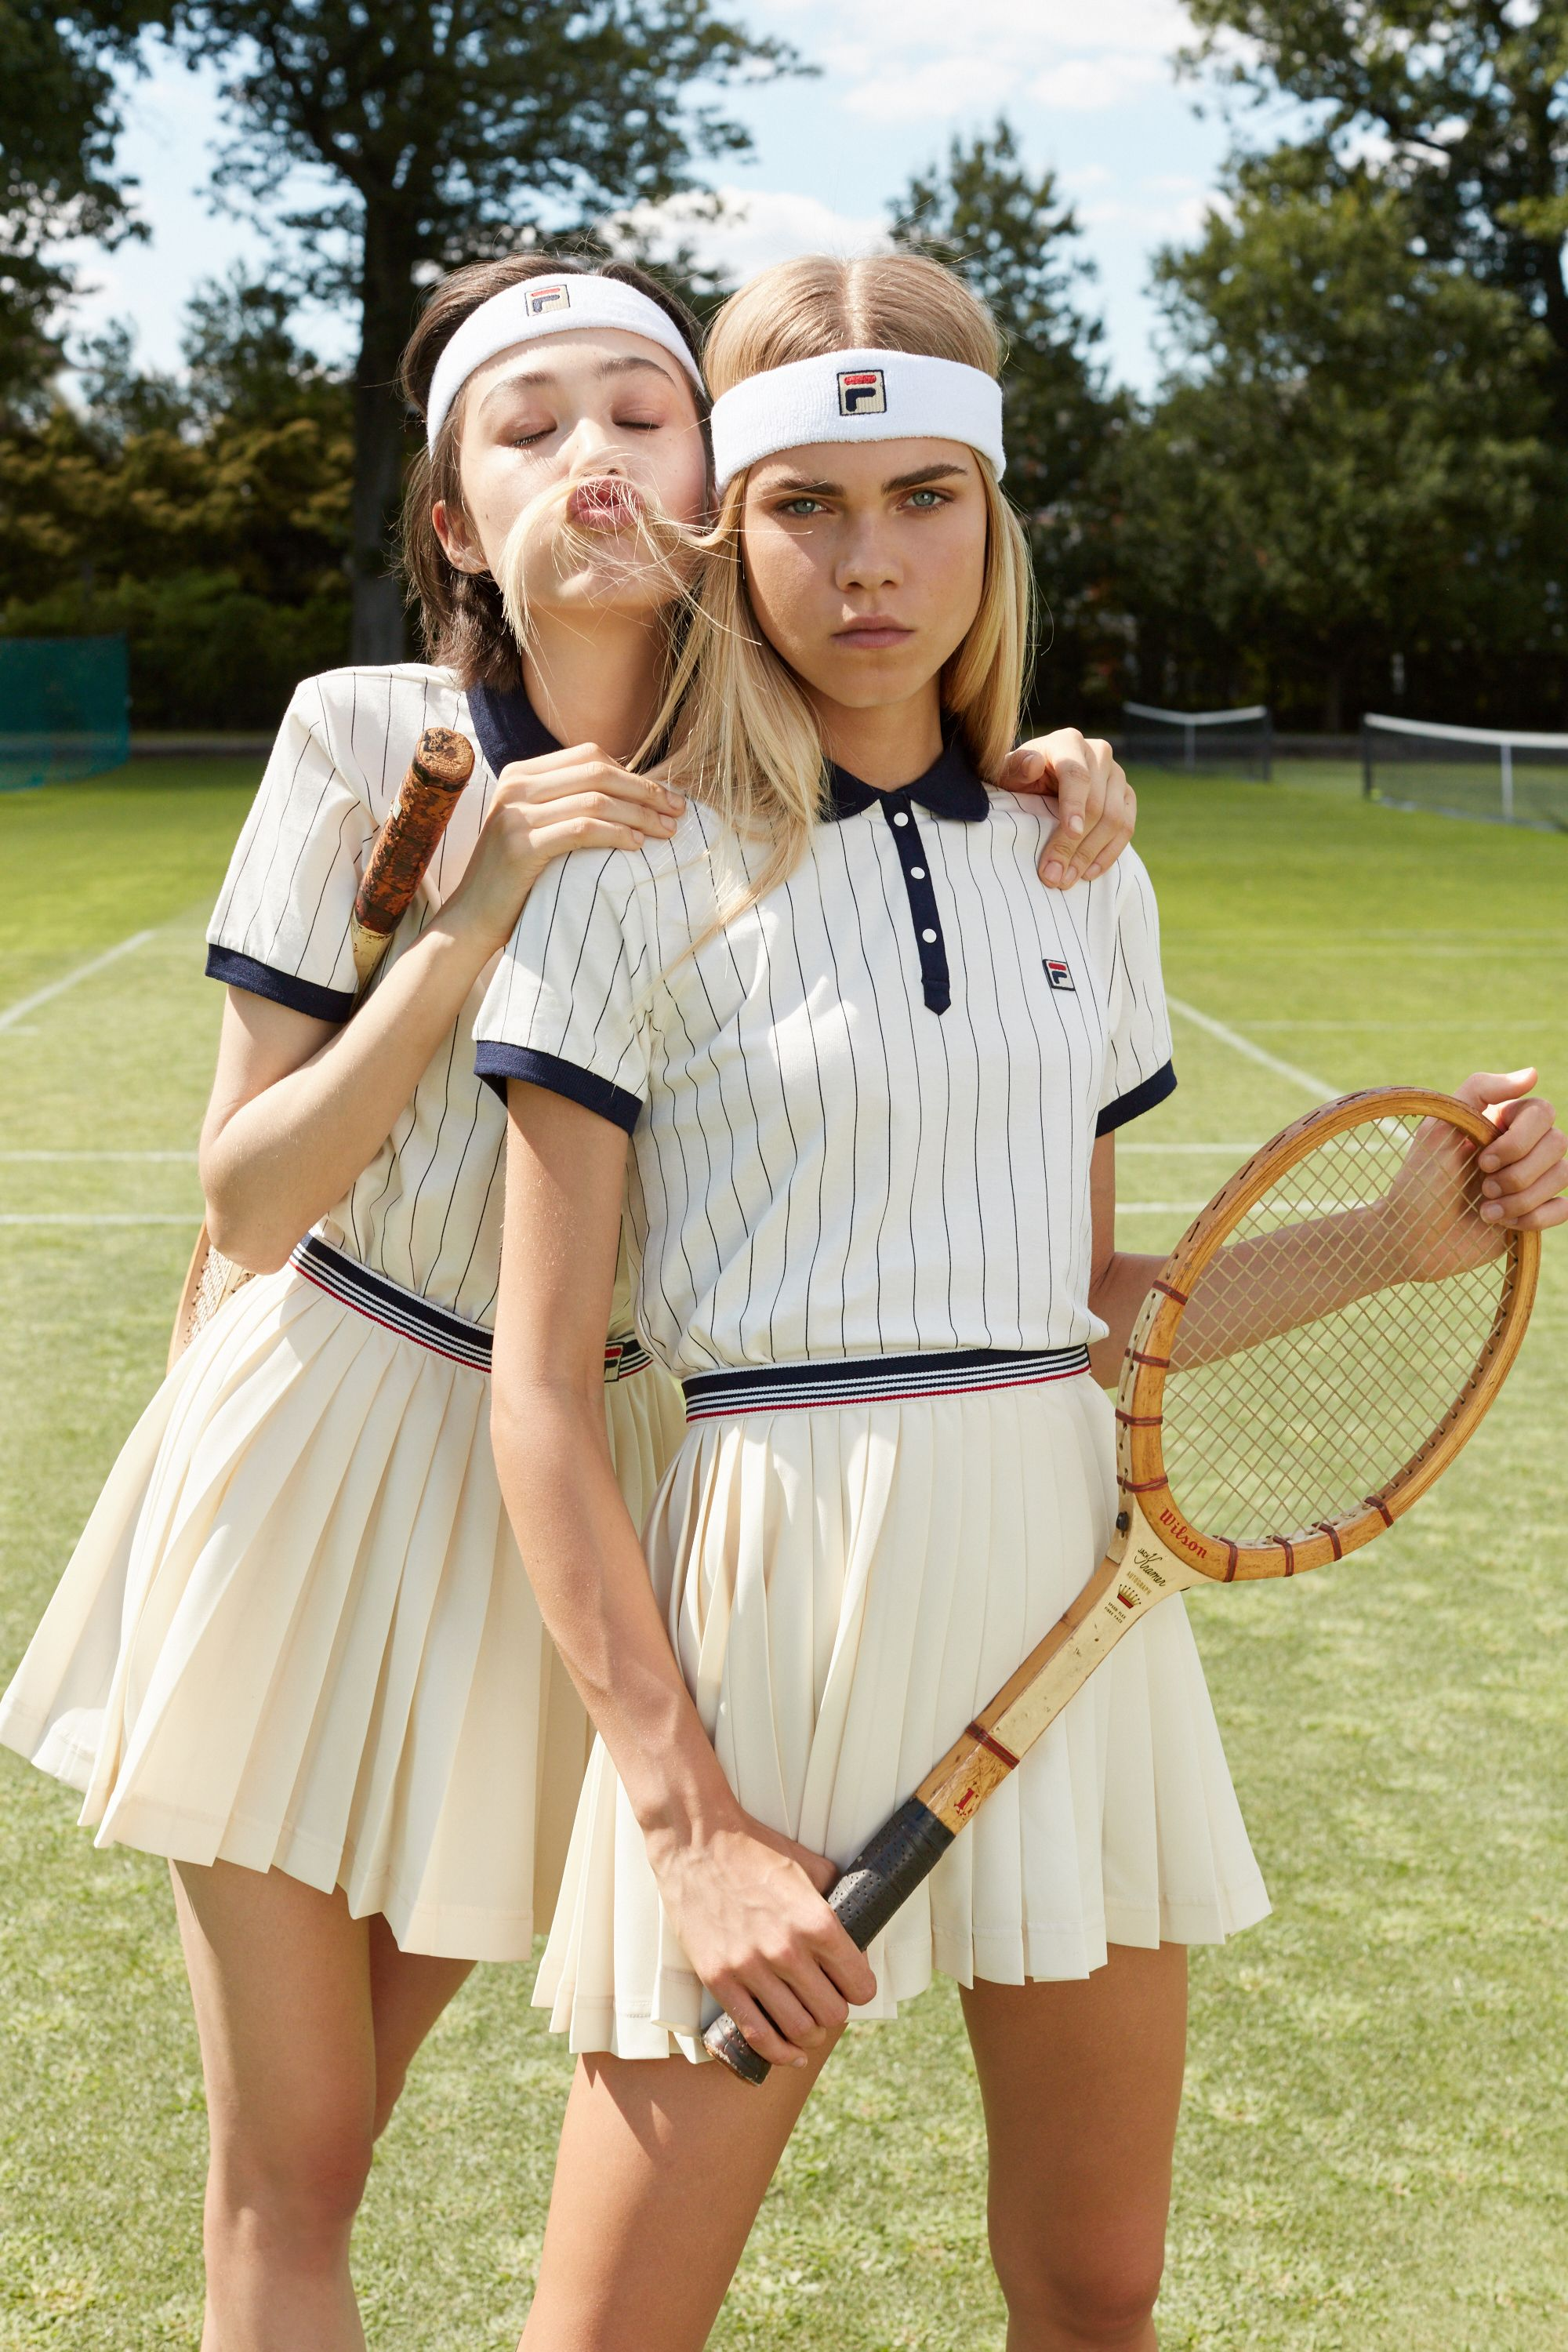 FILA + UO | Tennis fashion, Tennis clothes, Fashion